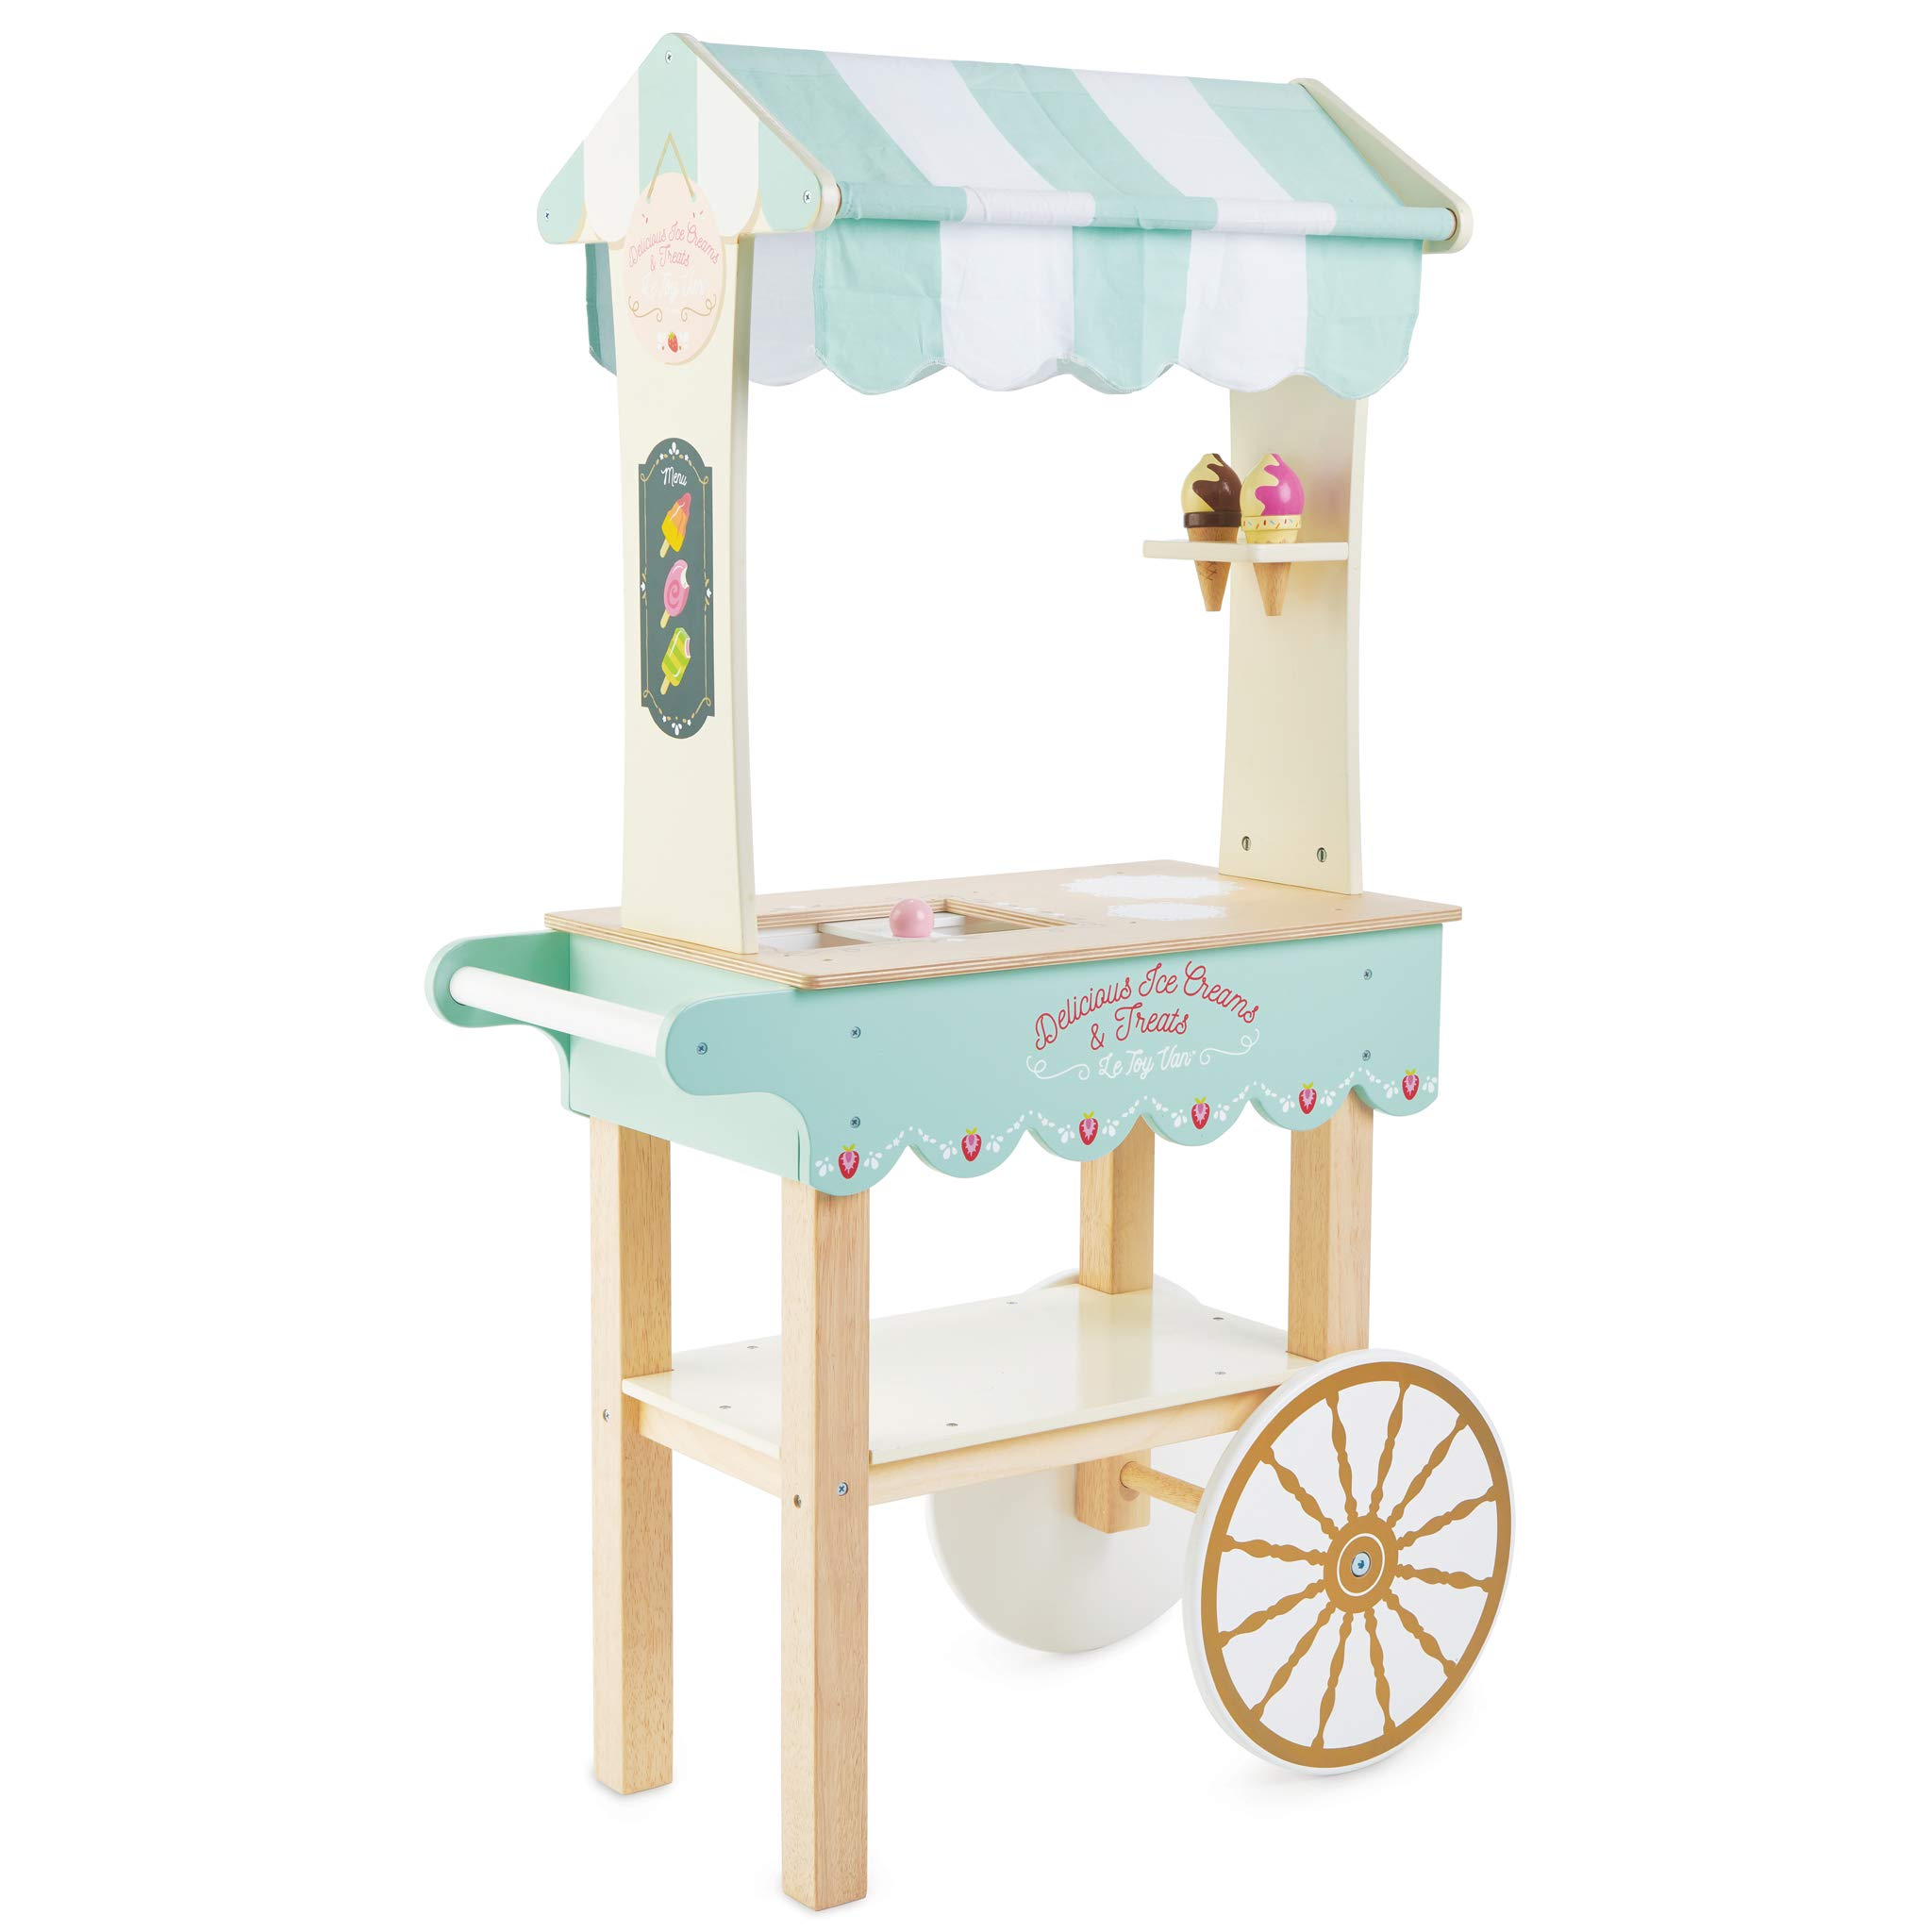 Le Toy Van - Educational Wooden Toy Role Play Ice Cream Trolley | Boys Or Girls Pretend Play Toy Food Playset - for Ages 3+